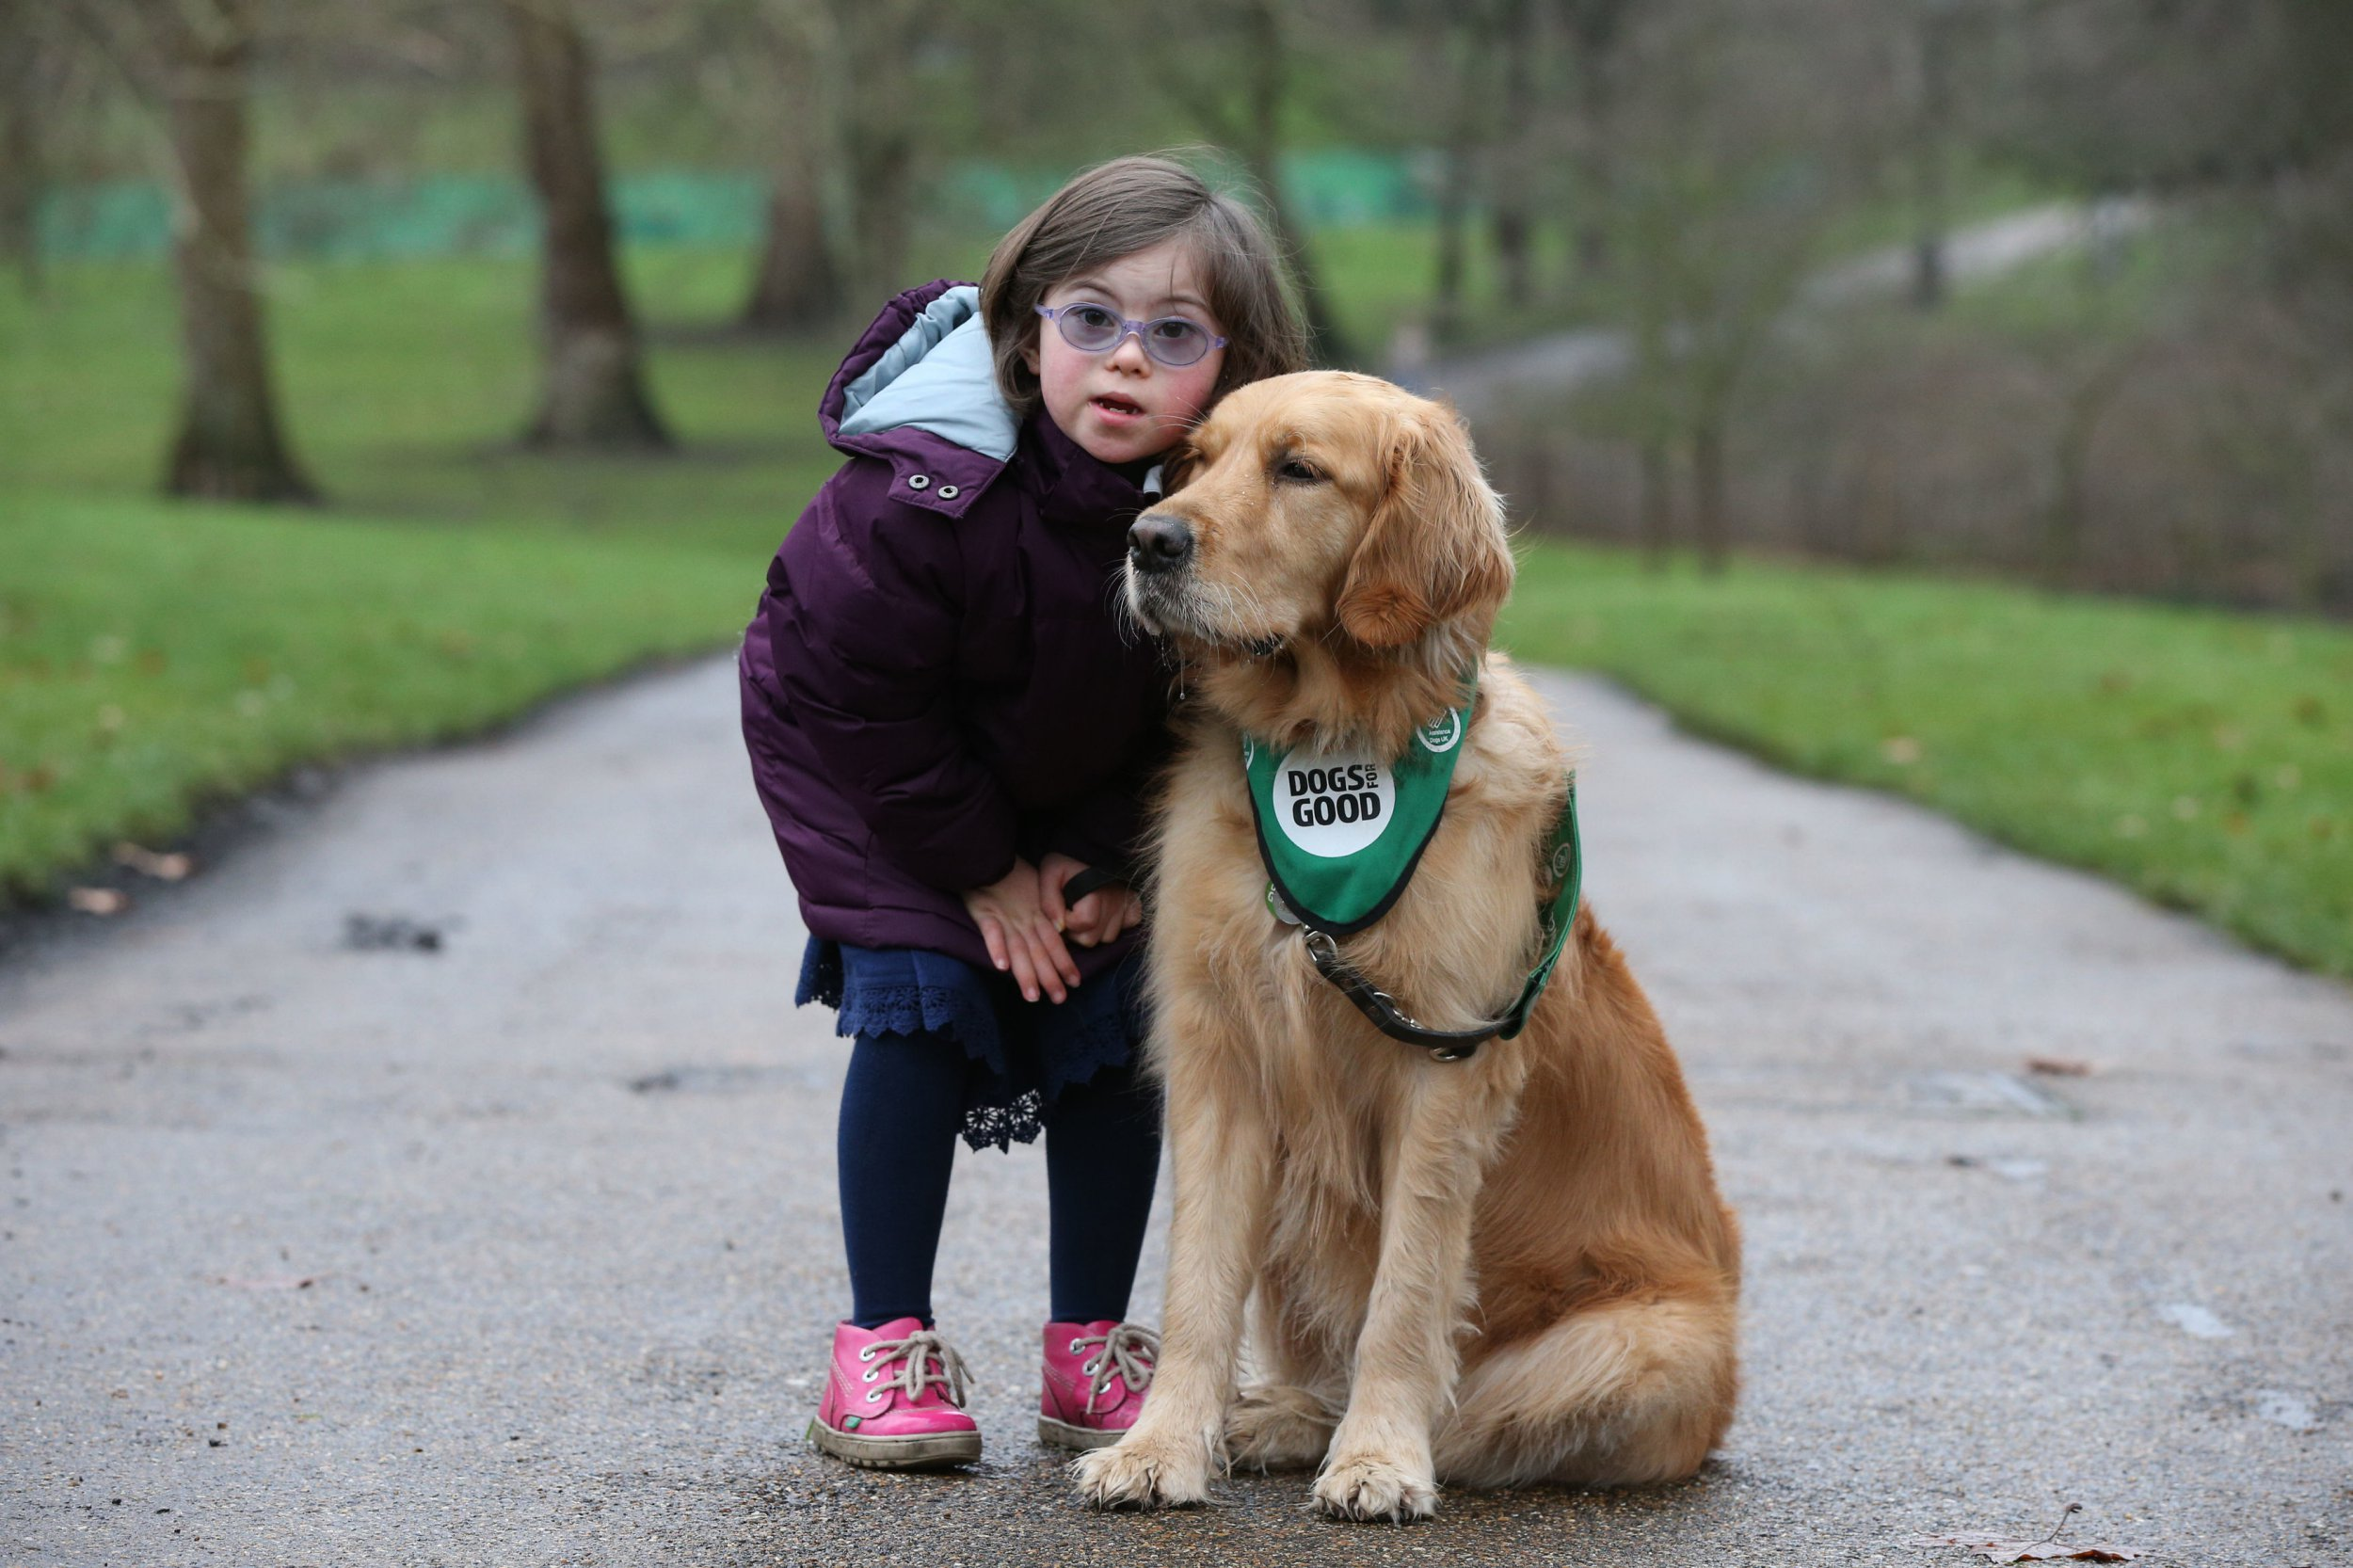 Milli Gunn from Essex with dog Emma , one of the finalists for the prestigious Crufts dog hero competition, Friends for Life 2019, at a launch event for this year's Crufts and the Friends for Life dog hero finalists at the Kennel Club in London. PRESS ASSOCIATION Photo. Picture date: Tuesday February 5, 2019. See PA story ANIMALS Crufts. Photo credit should read: Jonathan Brady/PA Wire